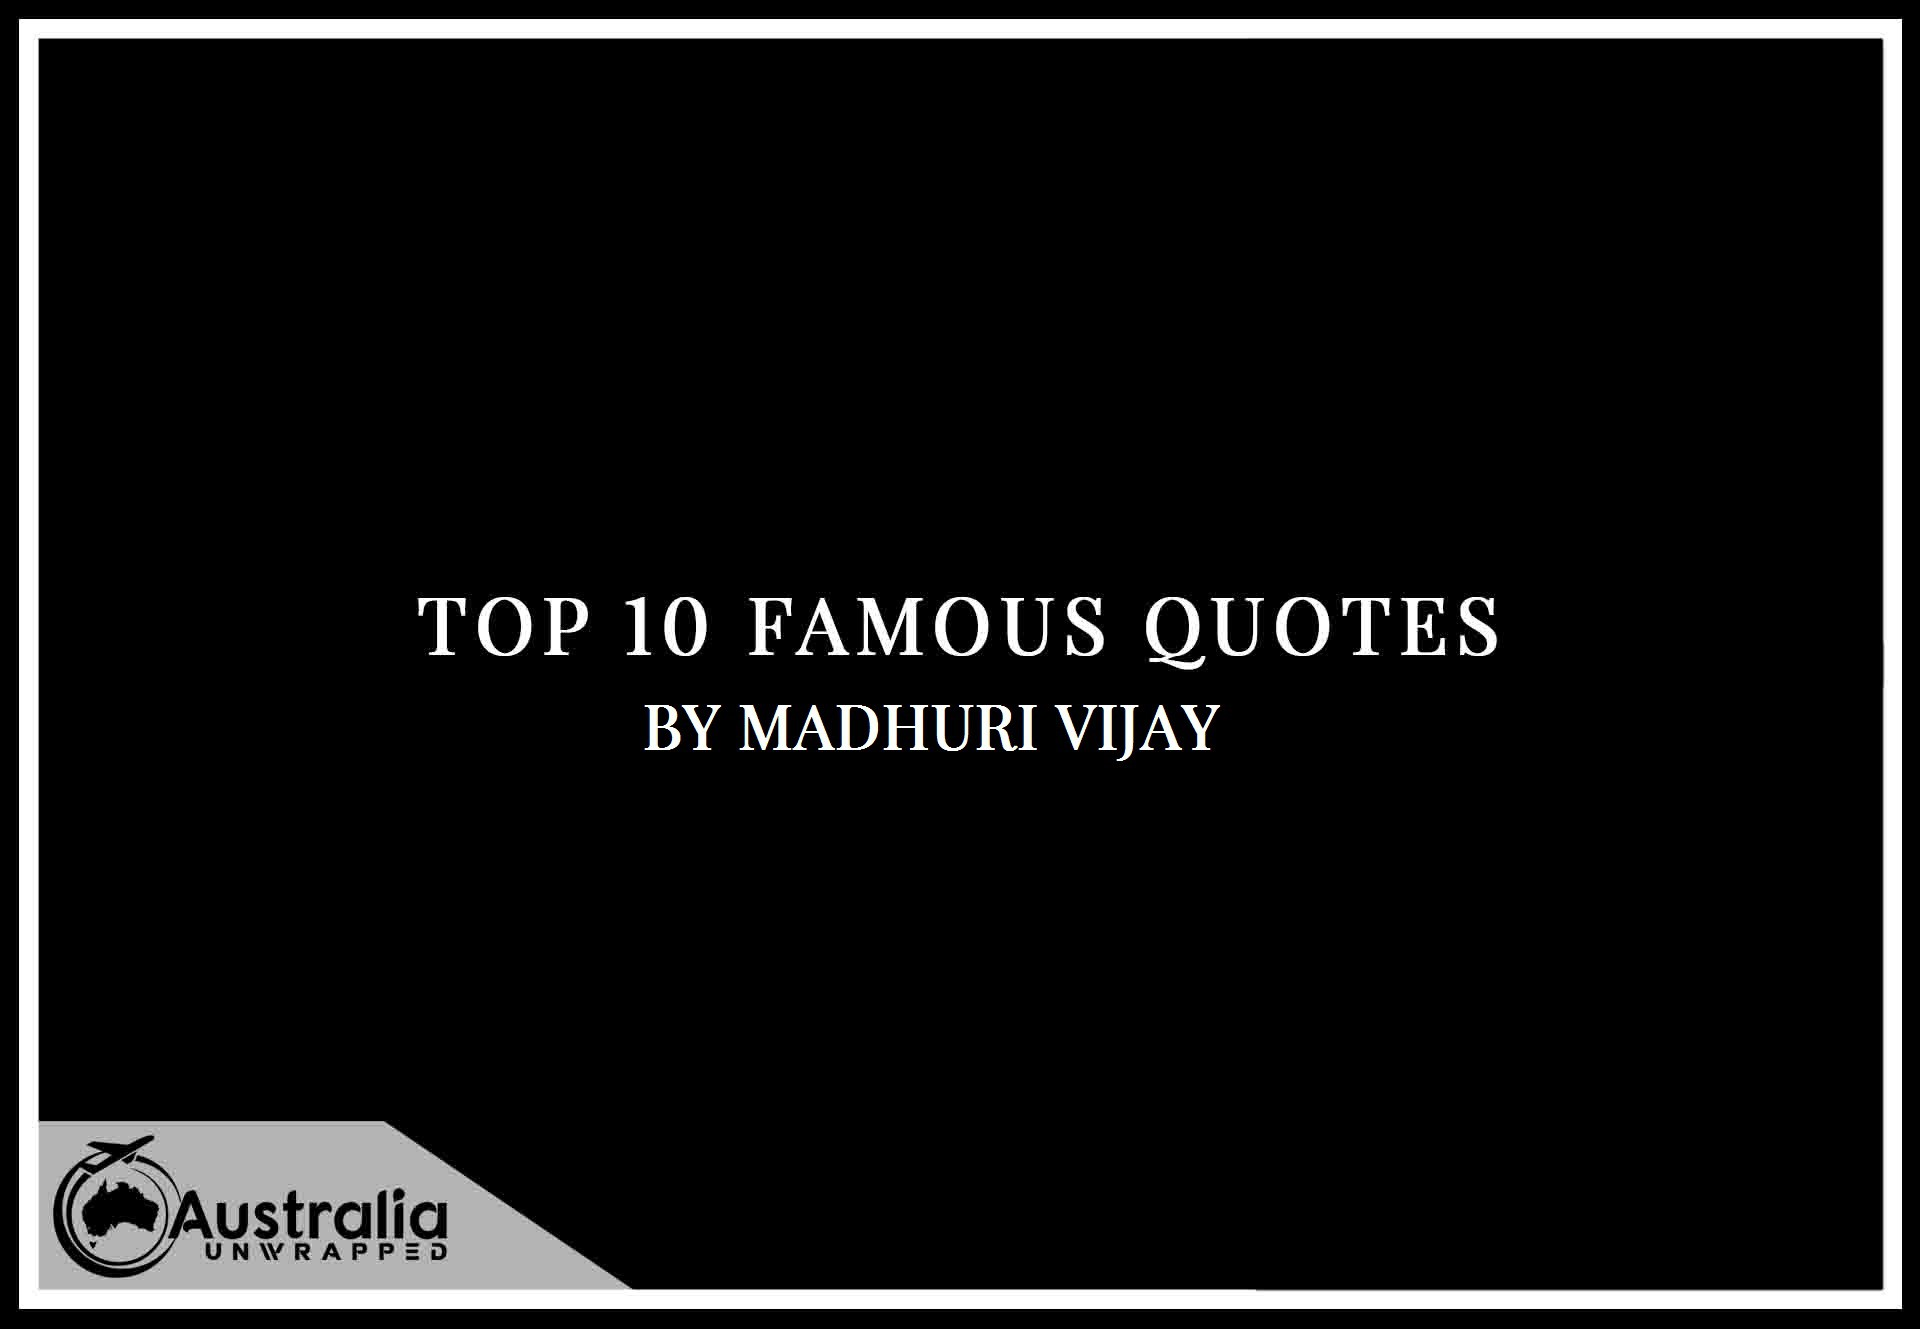 Madhuri Vijay's Top 10 Popular and Famous Quotes